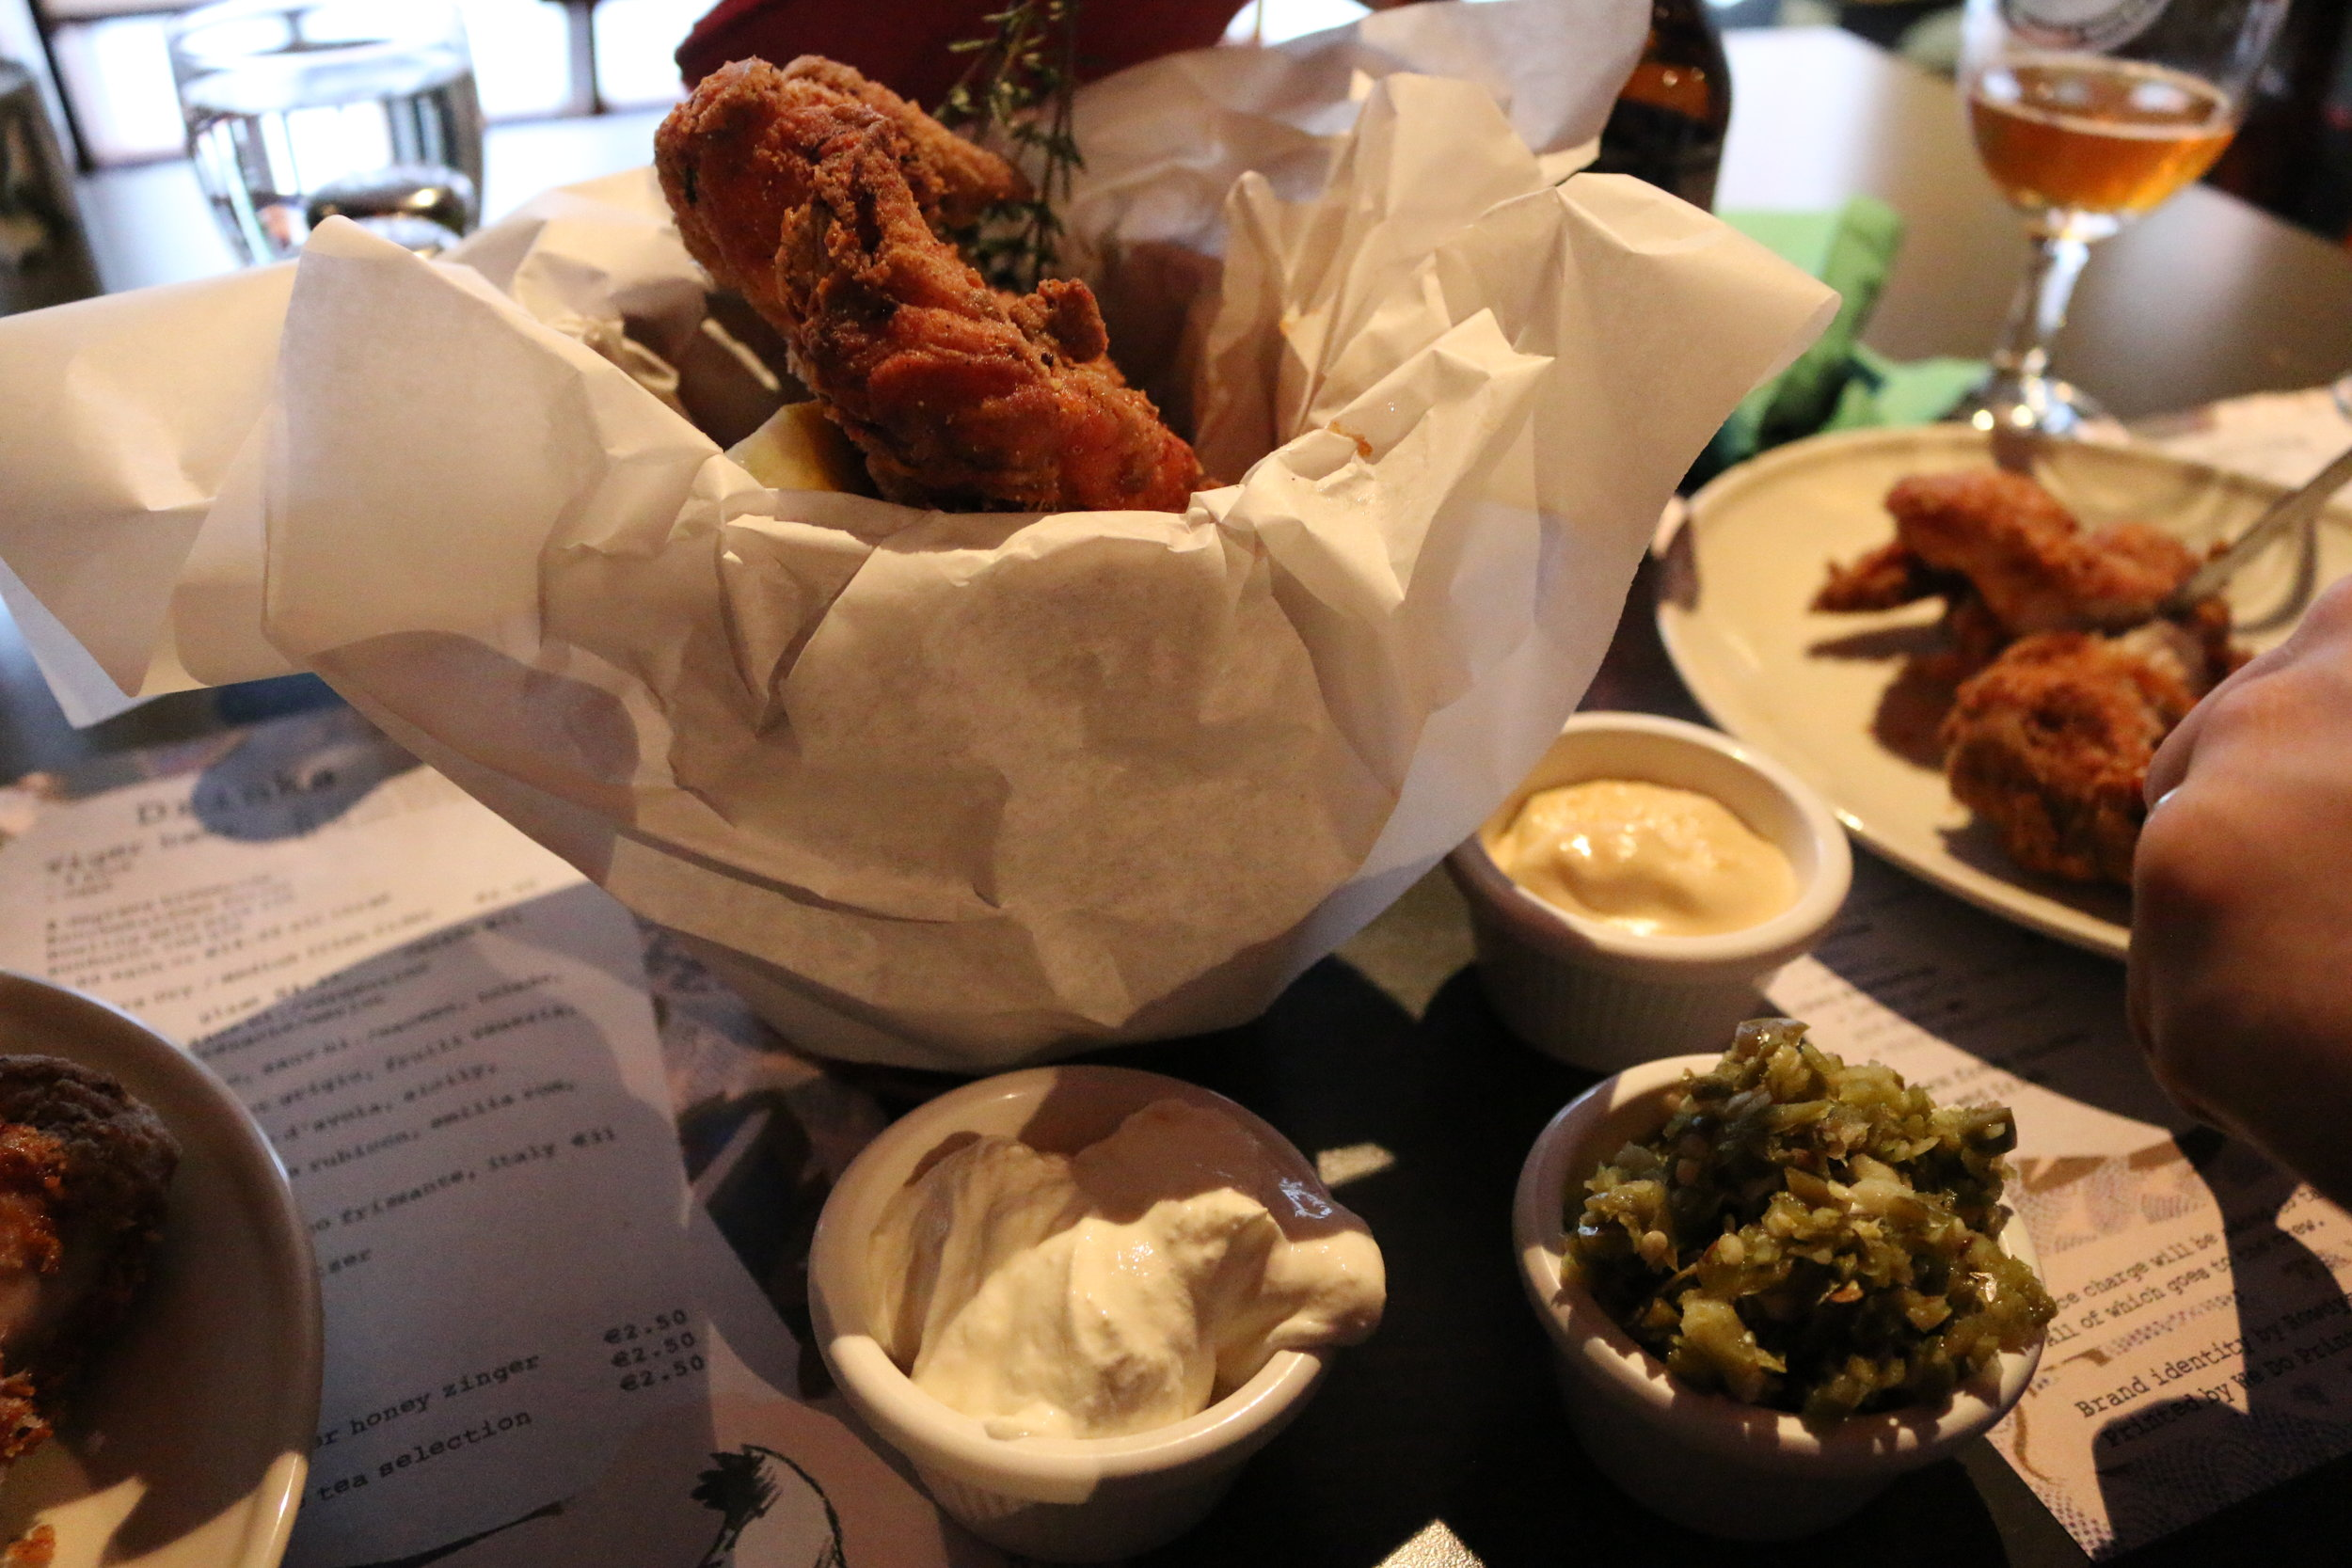 It's hard to take an award-winning photo of a piece of fried chicken, but what matters is that it tastes good, right? ;)